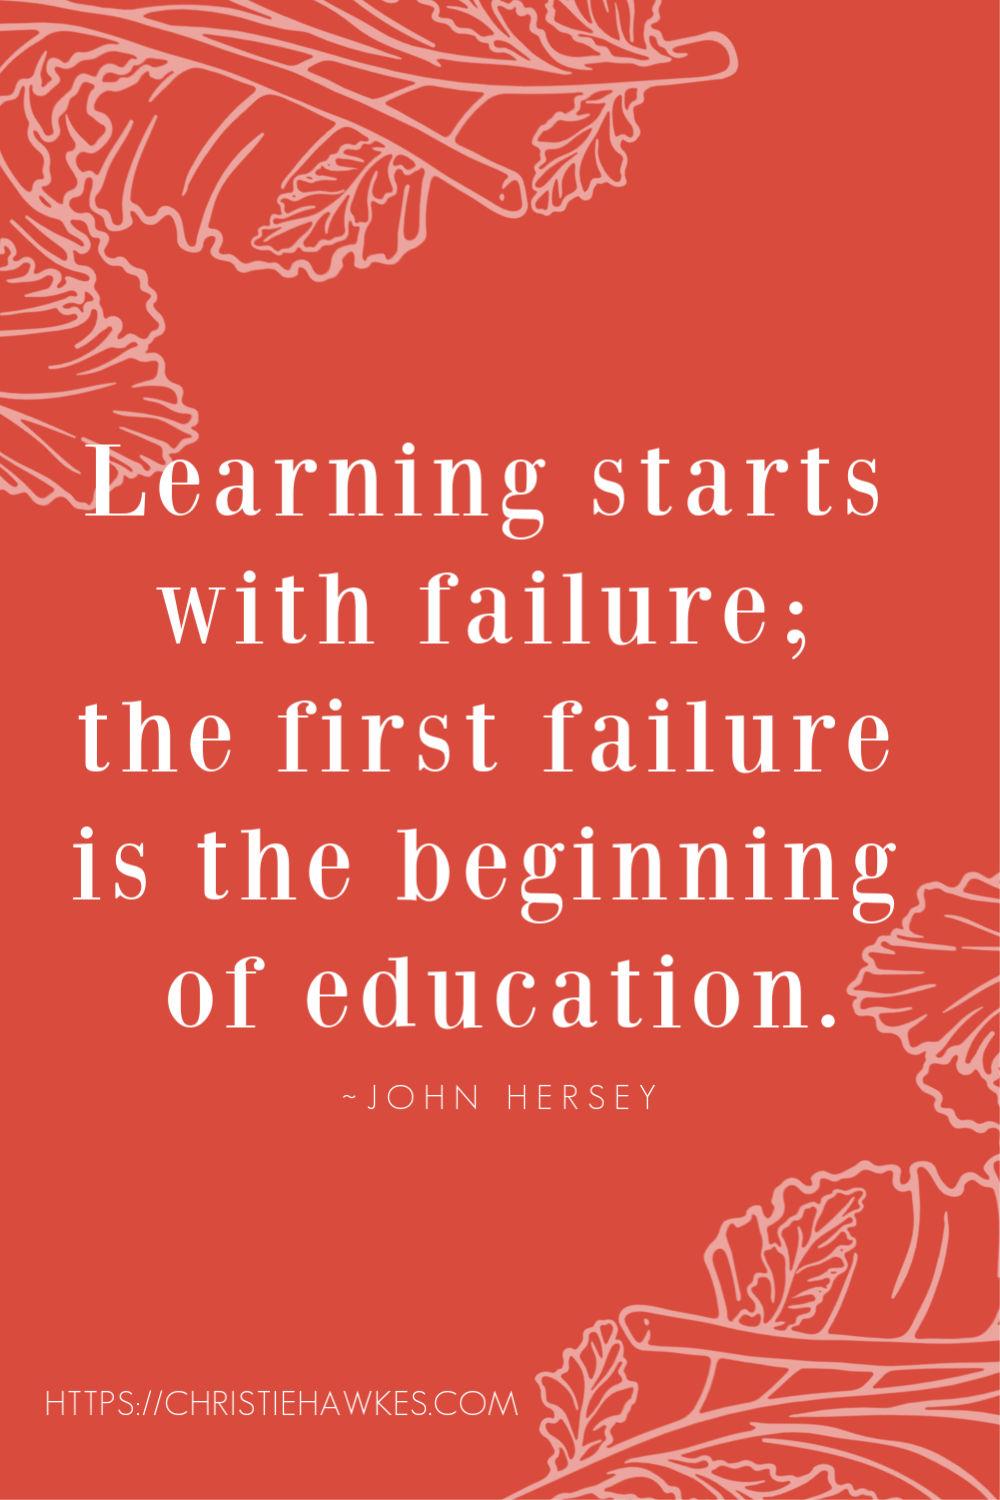 Learning starts with failure; the first failure is the beginning of education.